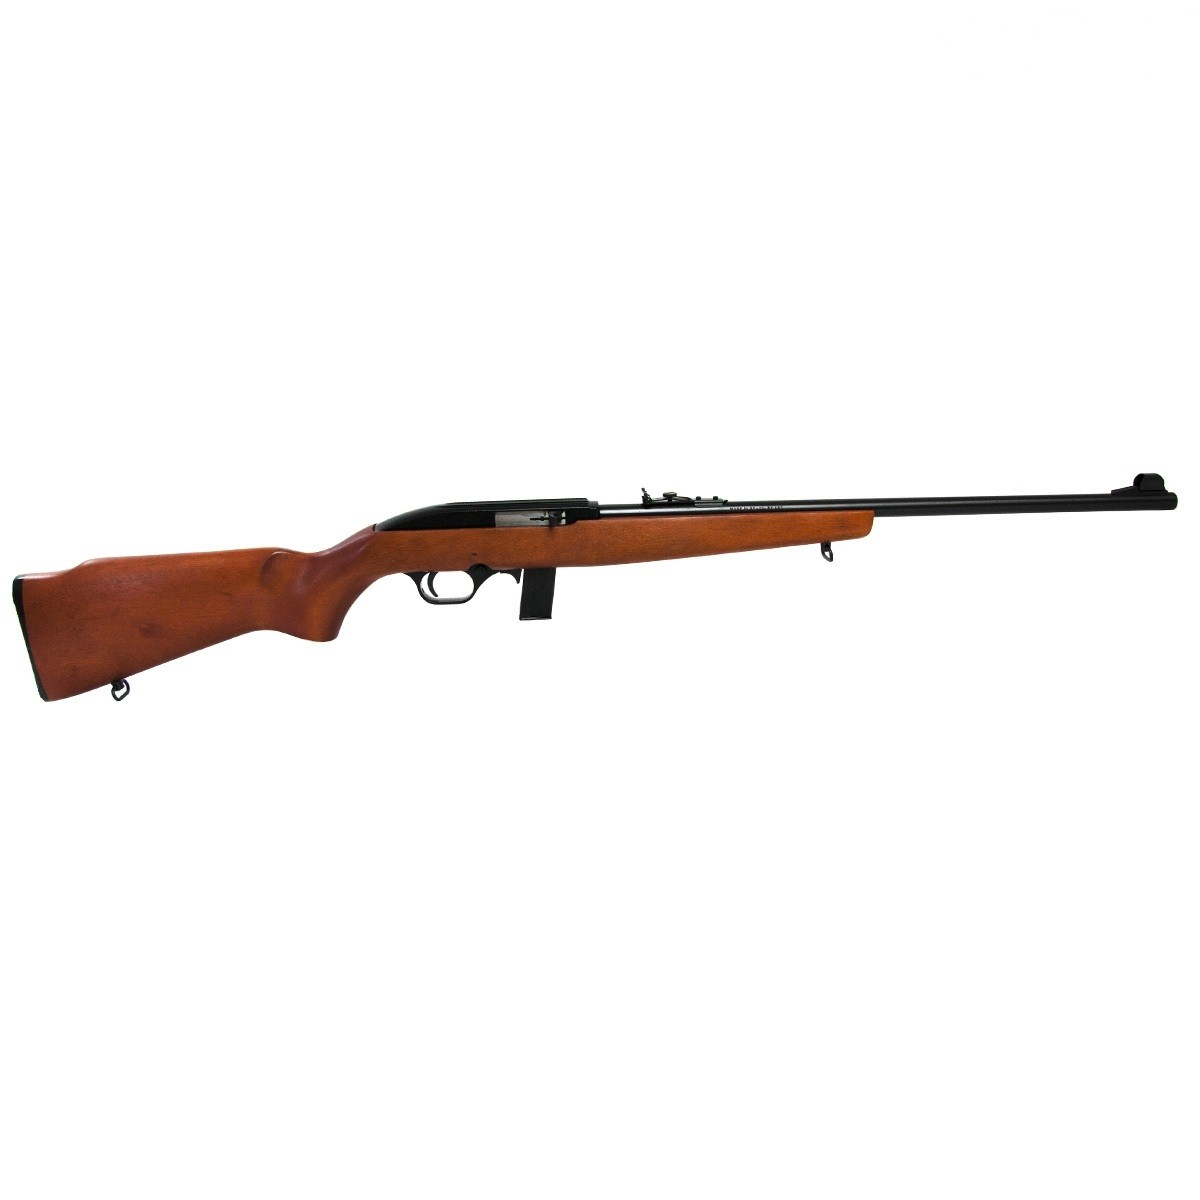 RIFLE CBC MODELO 7022 CALIBRE .22LR - 2554